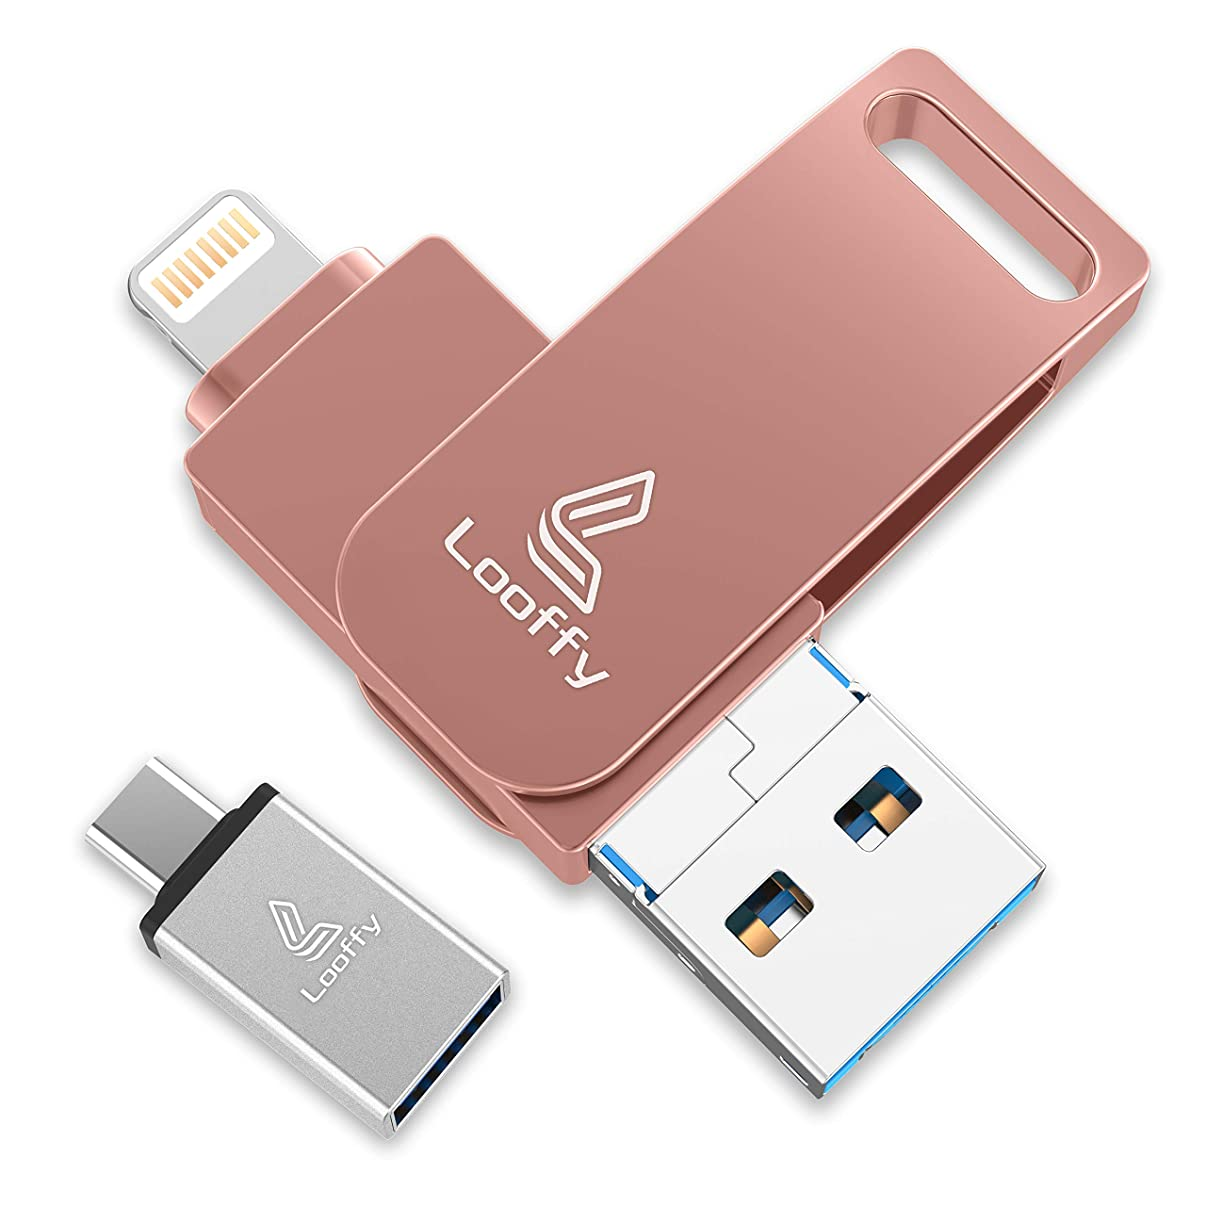 Photo Stick for iPhone iPad iOS Flash Drive Photostick Mobile USB Flash Drive with Type C for OTG Android USB 3.0 Memory Stick MacBook PC External Storage Expansion by Looffy